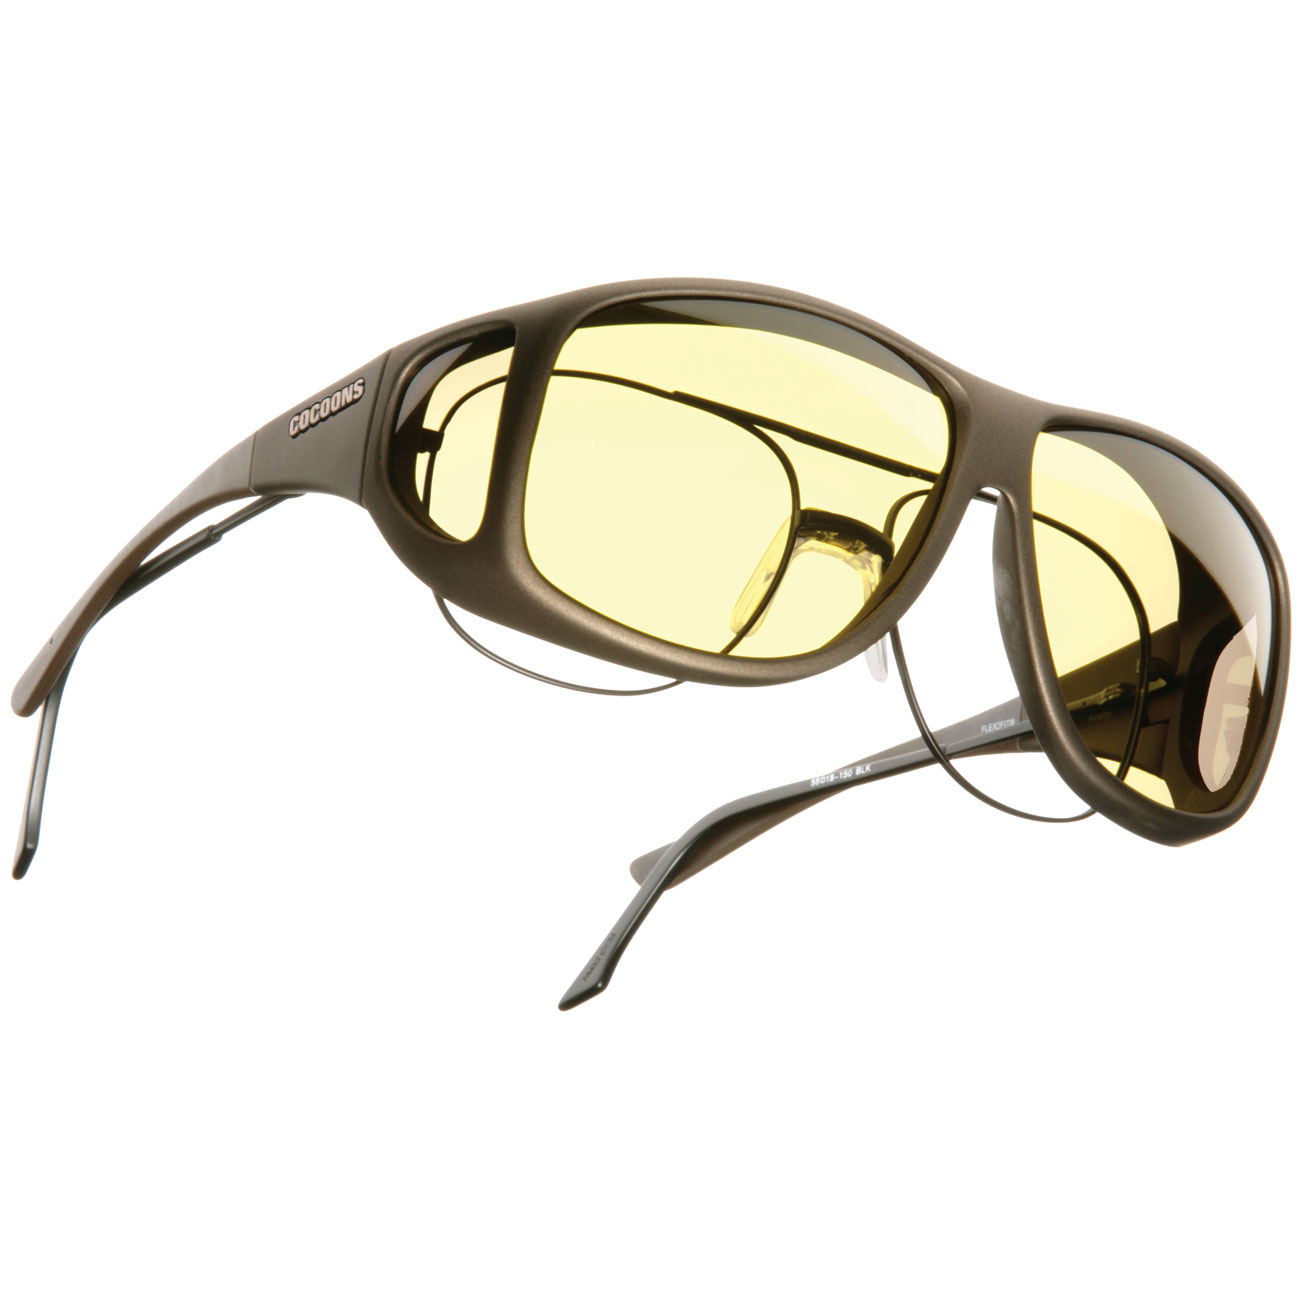 Cocoons Blue Light Computer Eyewear - Aviator XL